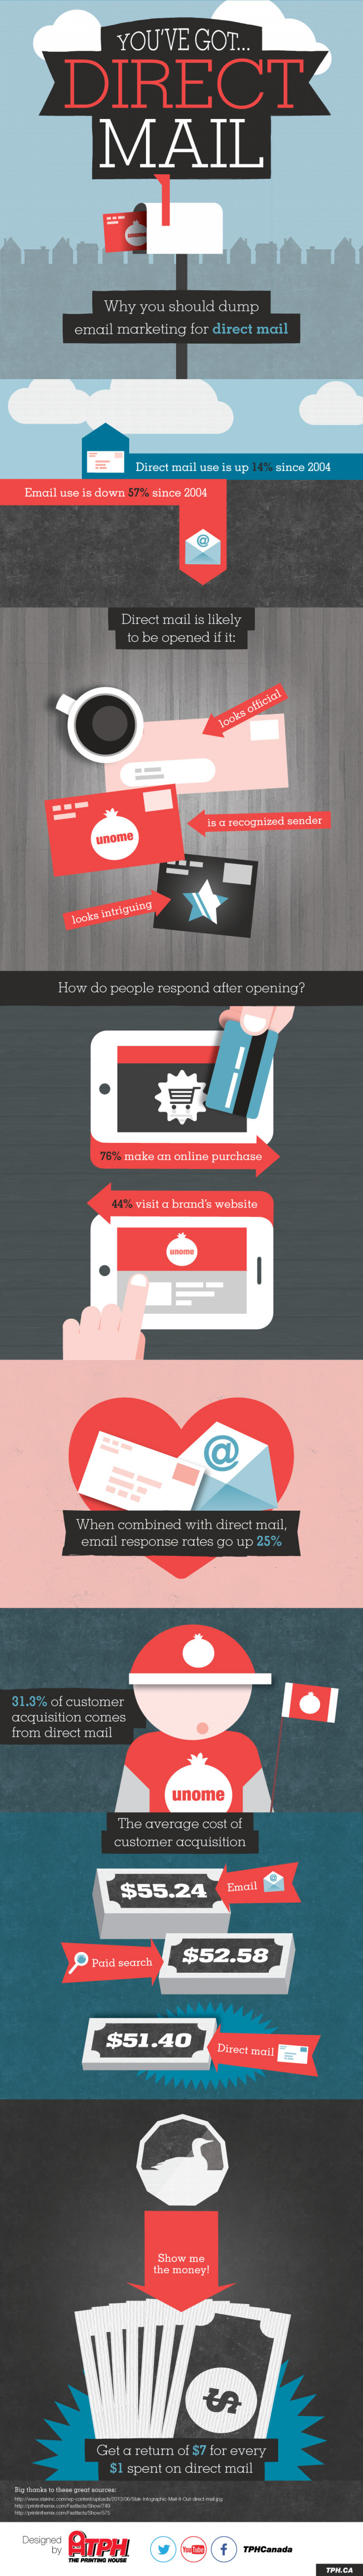 You've Got Direct Mail: Why You Should Dump Email Marketing for Direct Mail Infographic